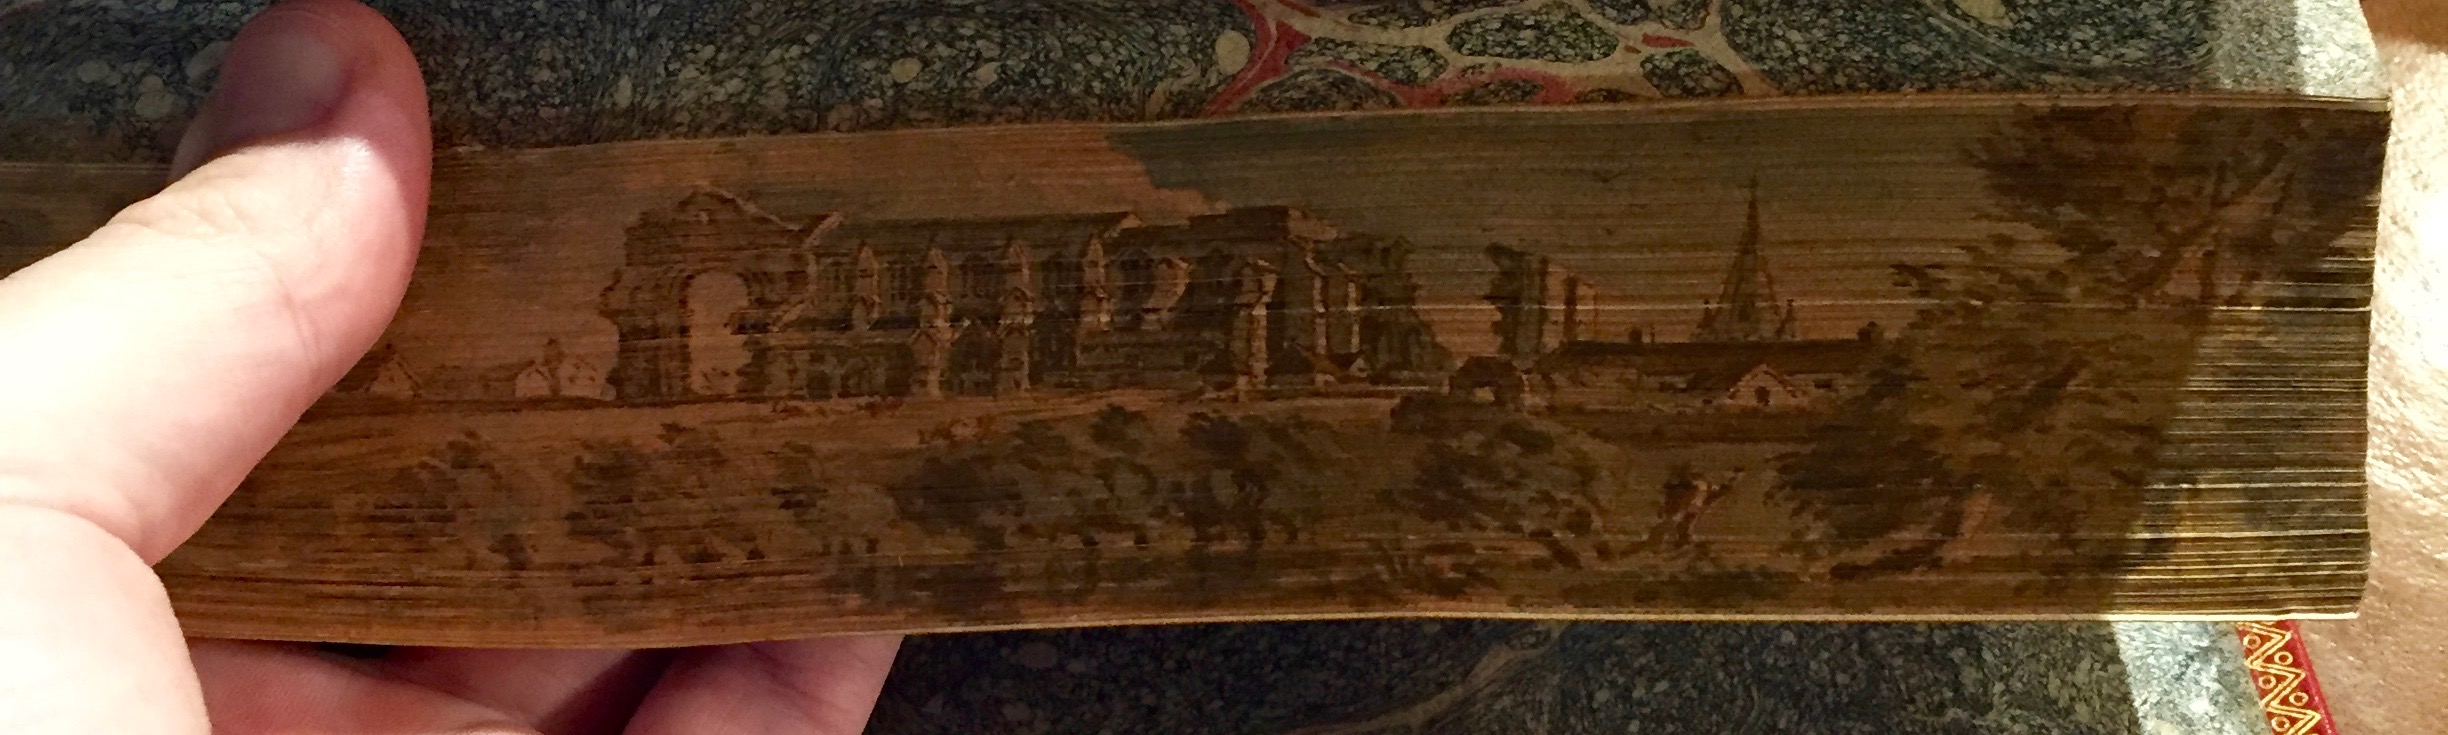 Malmesbury Abbey. Vol. I, fore-edge.